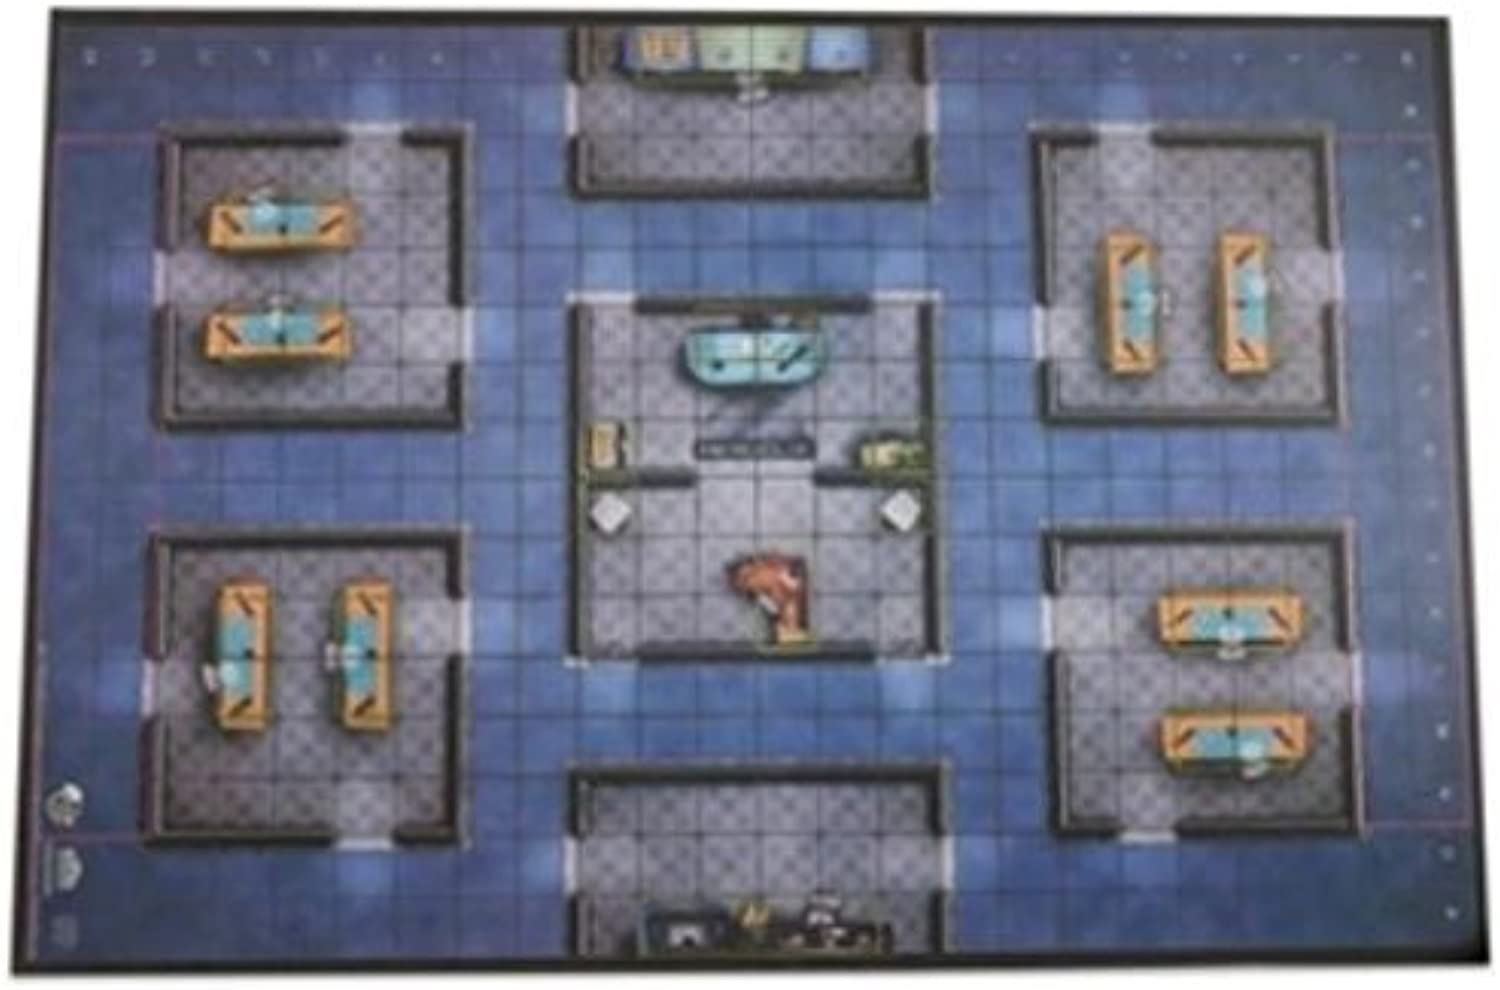 Collector's Premium Map - WizKids Office by HeroClix Game Accessories